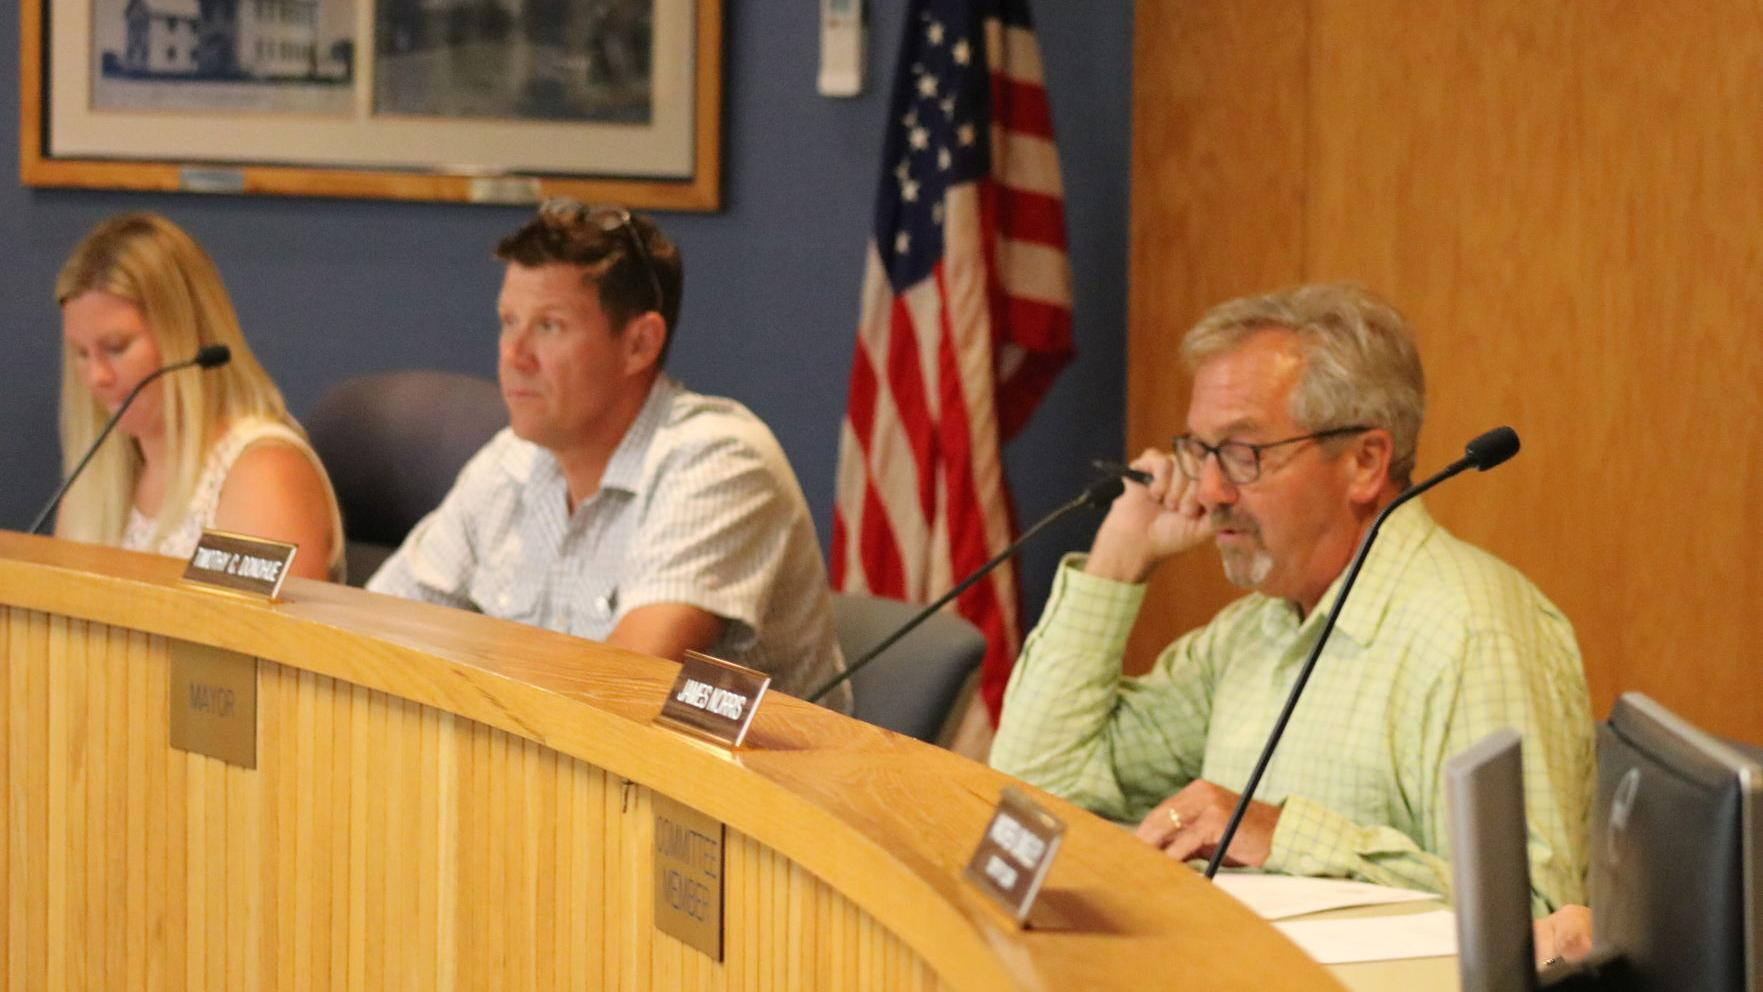 Affordable housing plan at issue in Middle Township as claims arise of officials dragging feet